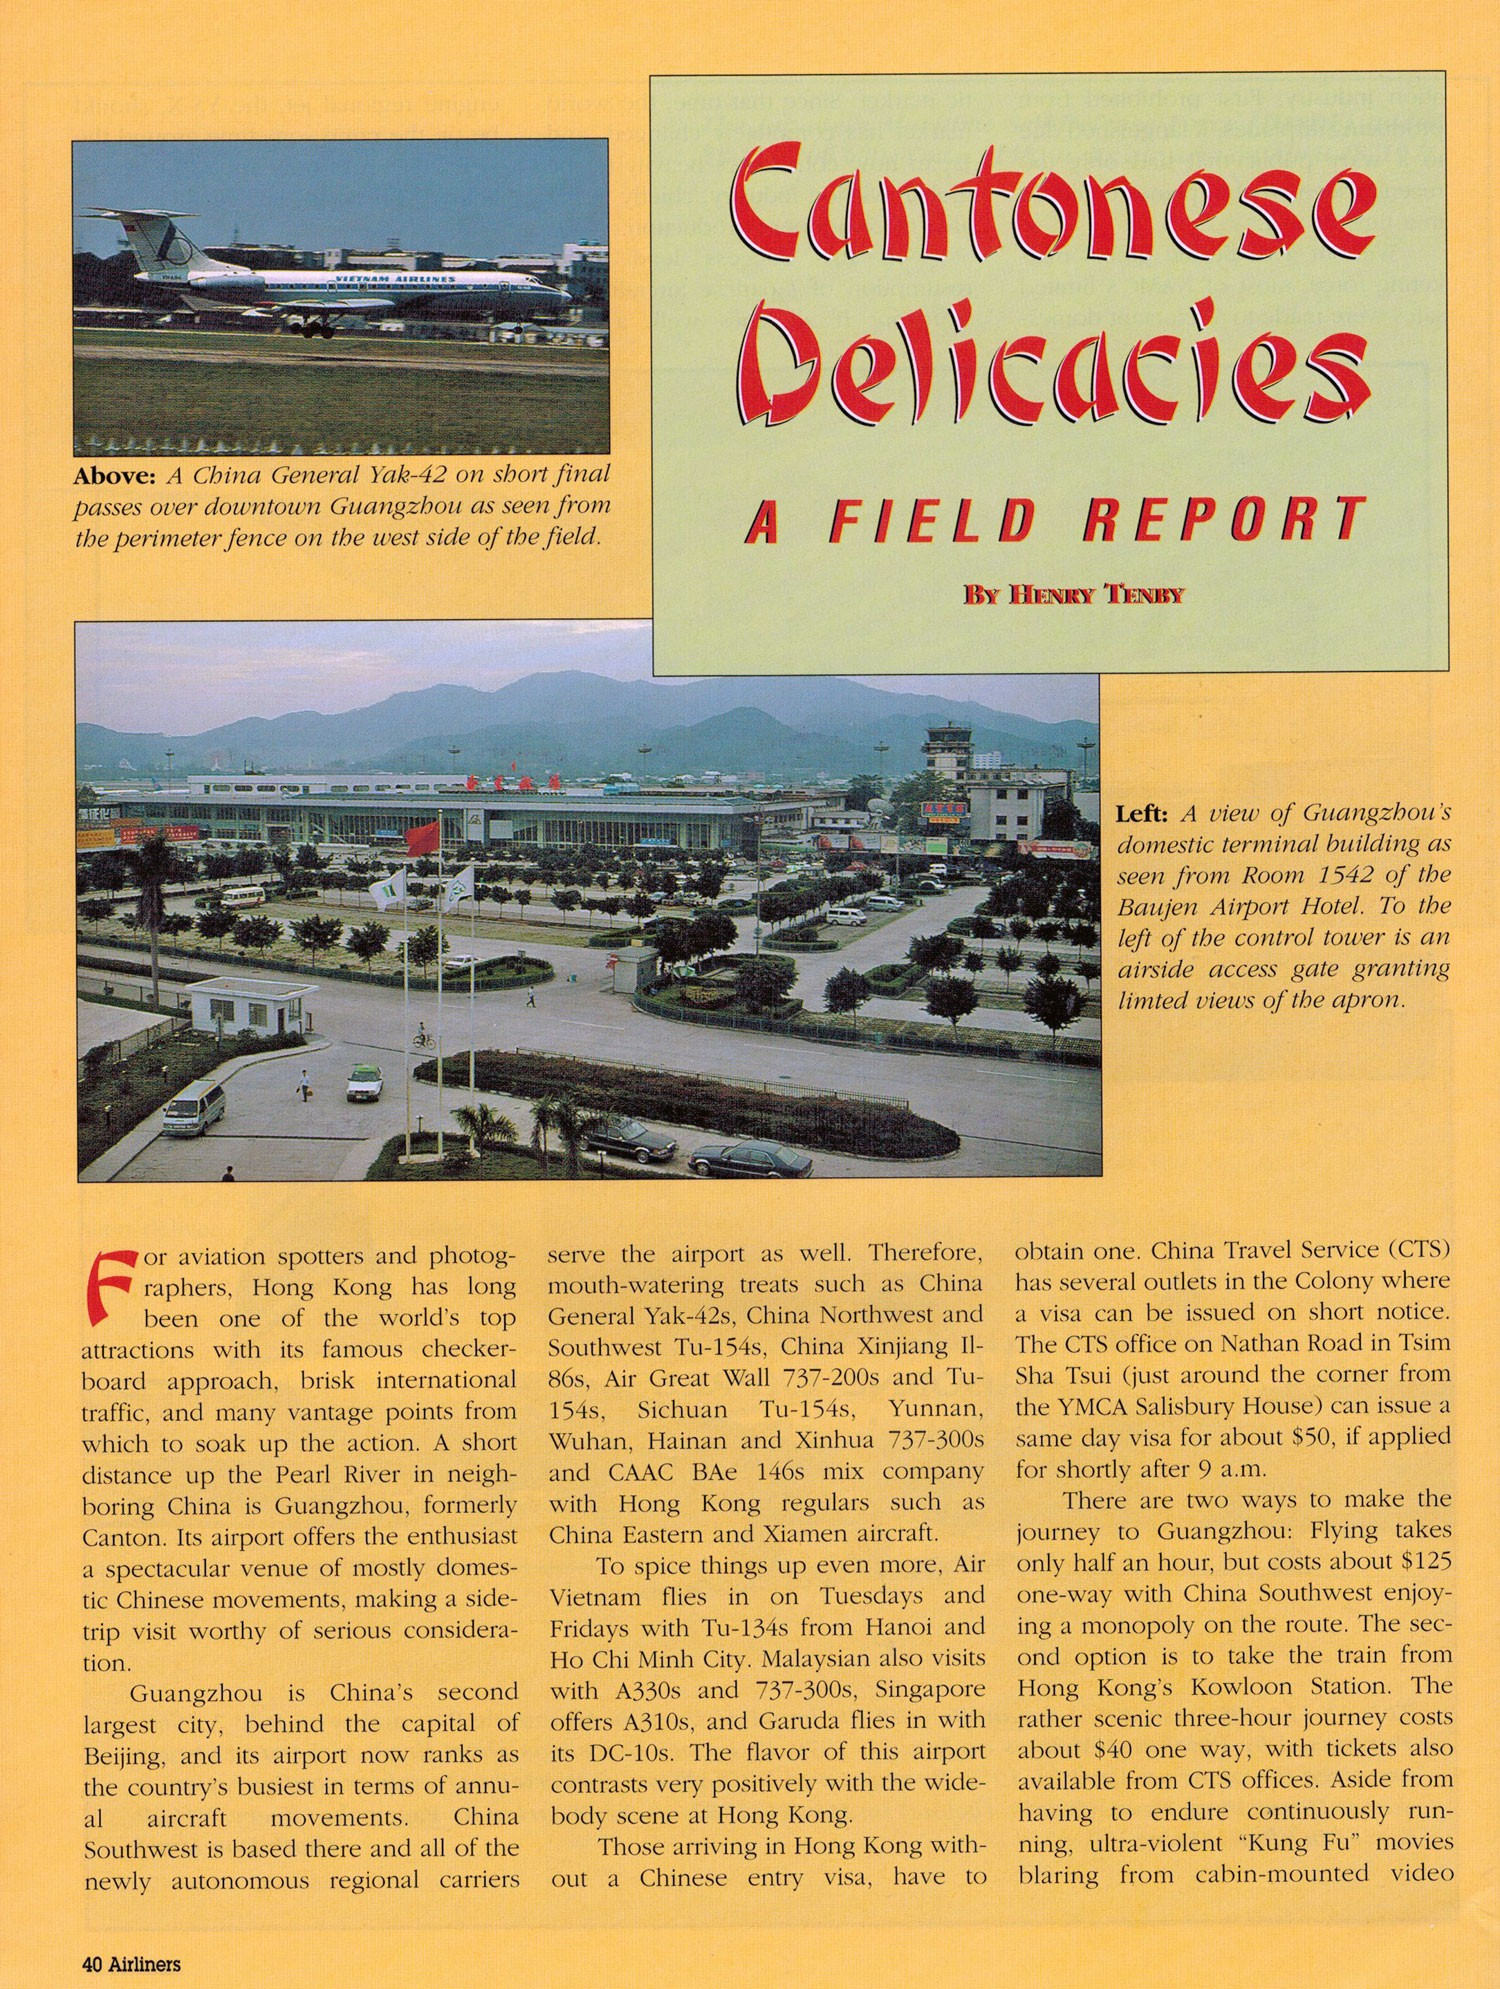 Cantonese Delicacies A Field Report by Henry Tenby